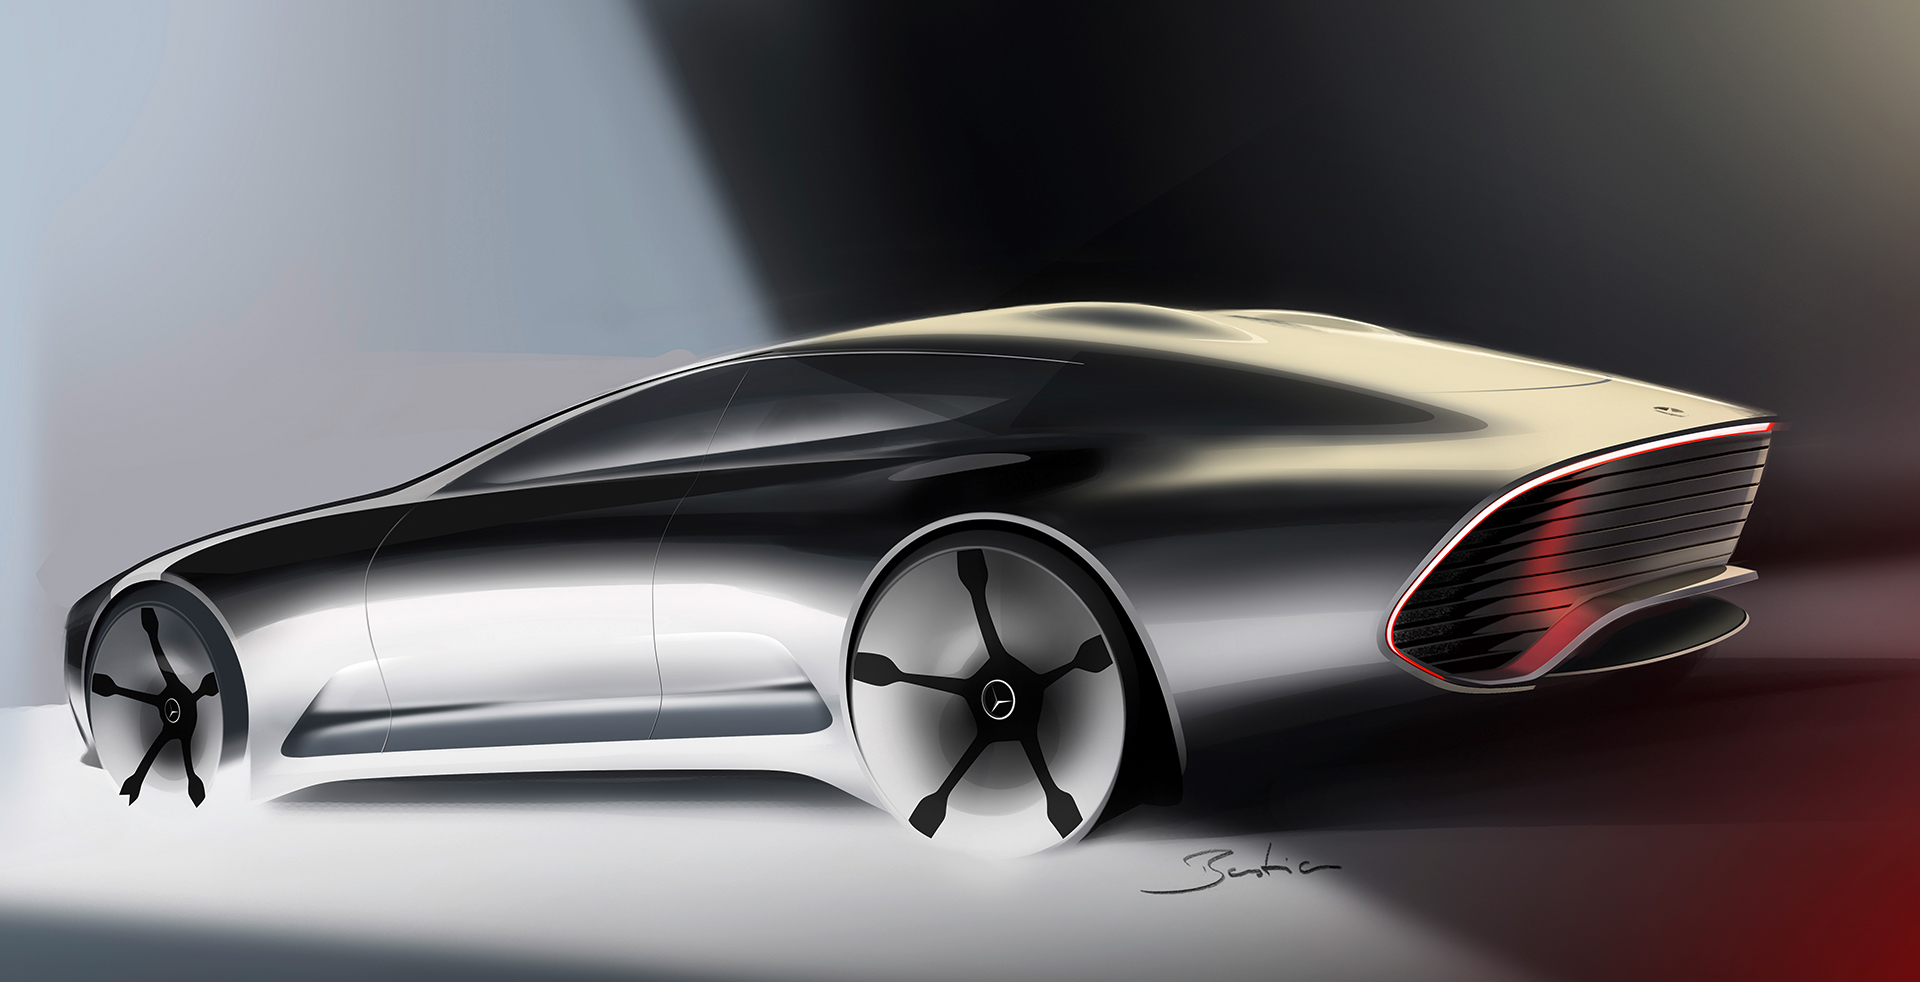 Mercedes-Benz Concept IAA - sketch rear design / sketch design arrière